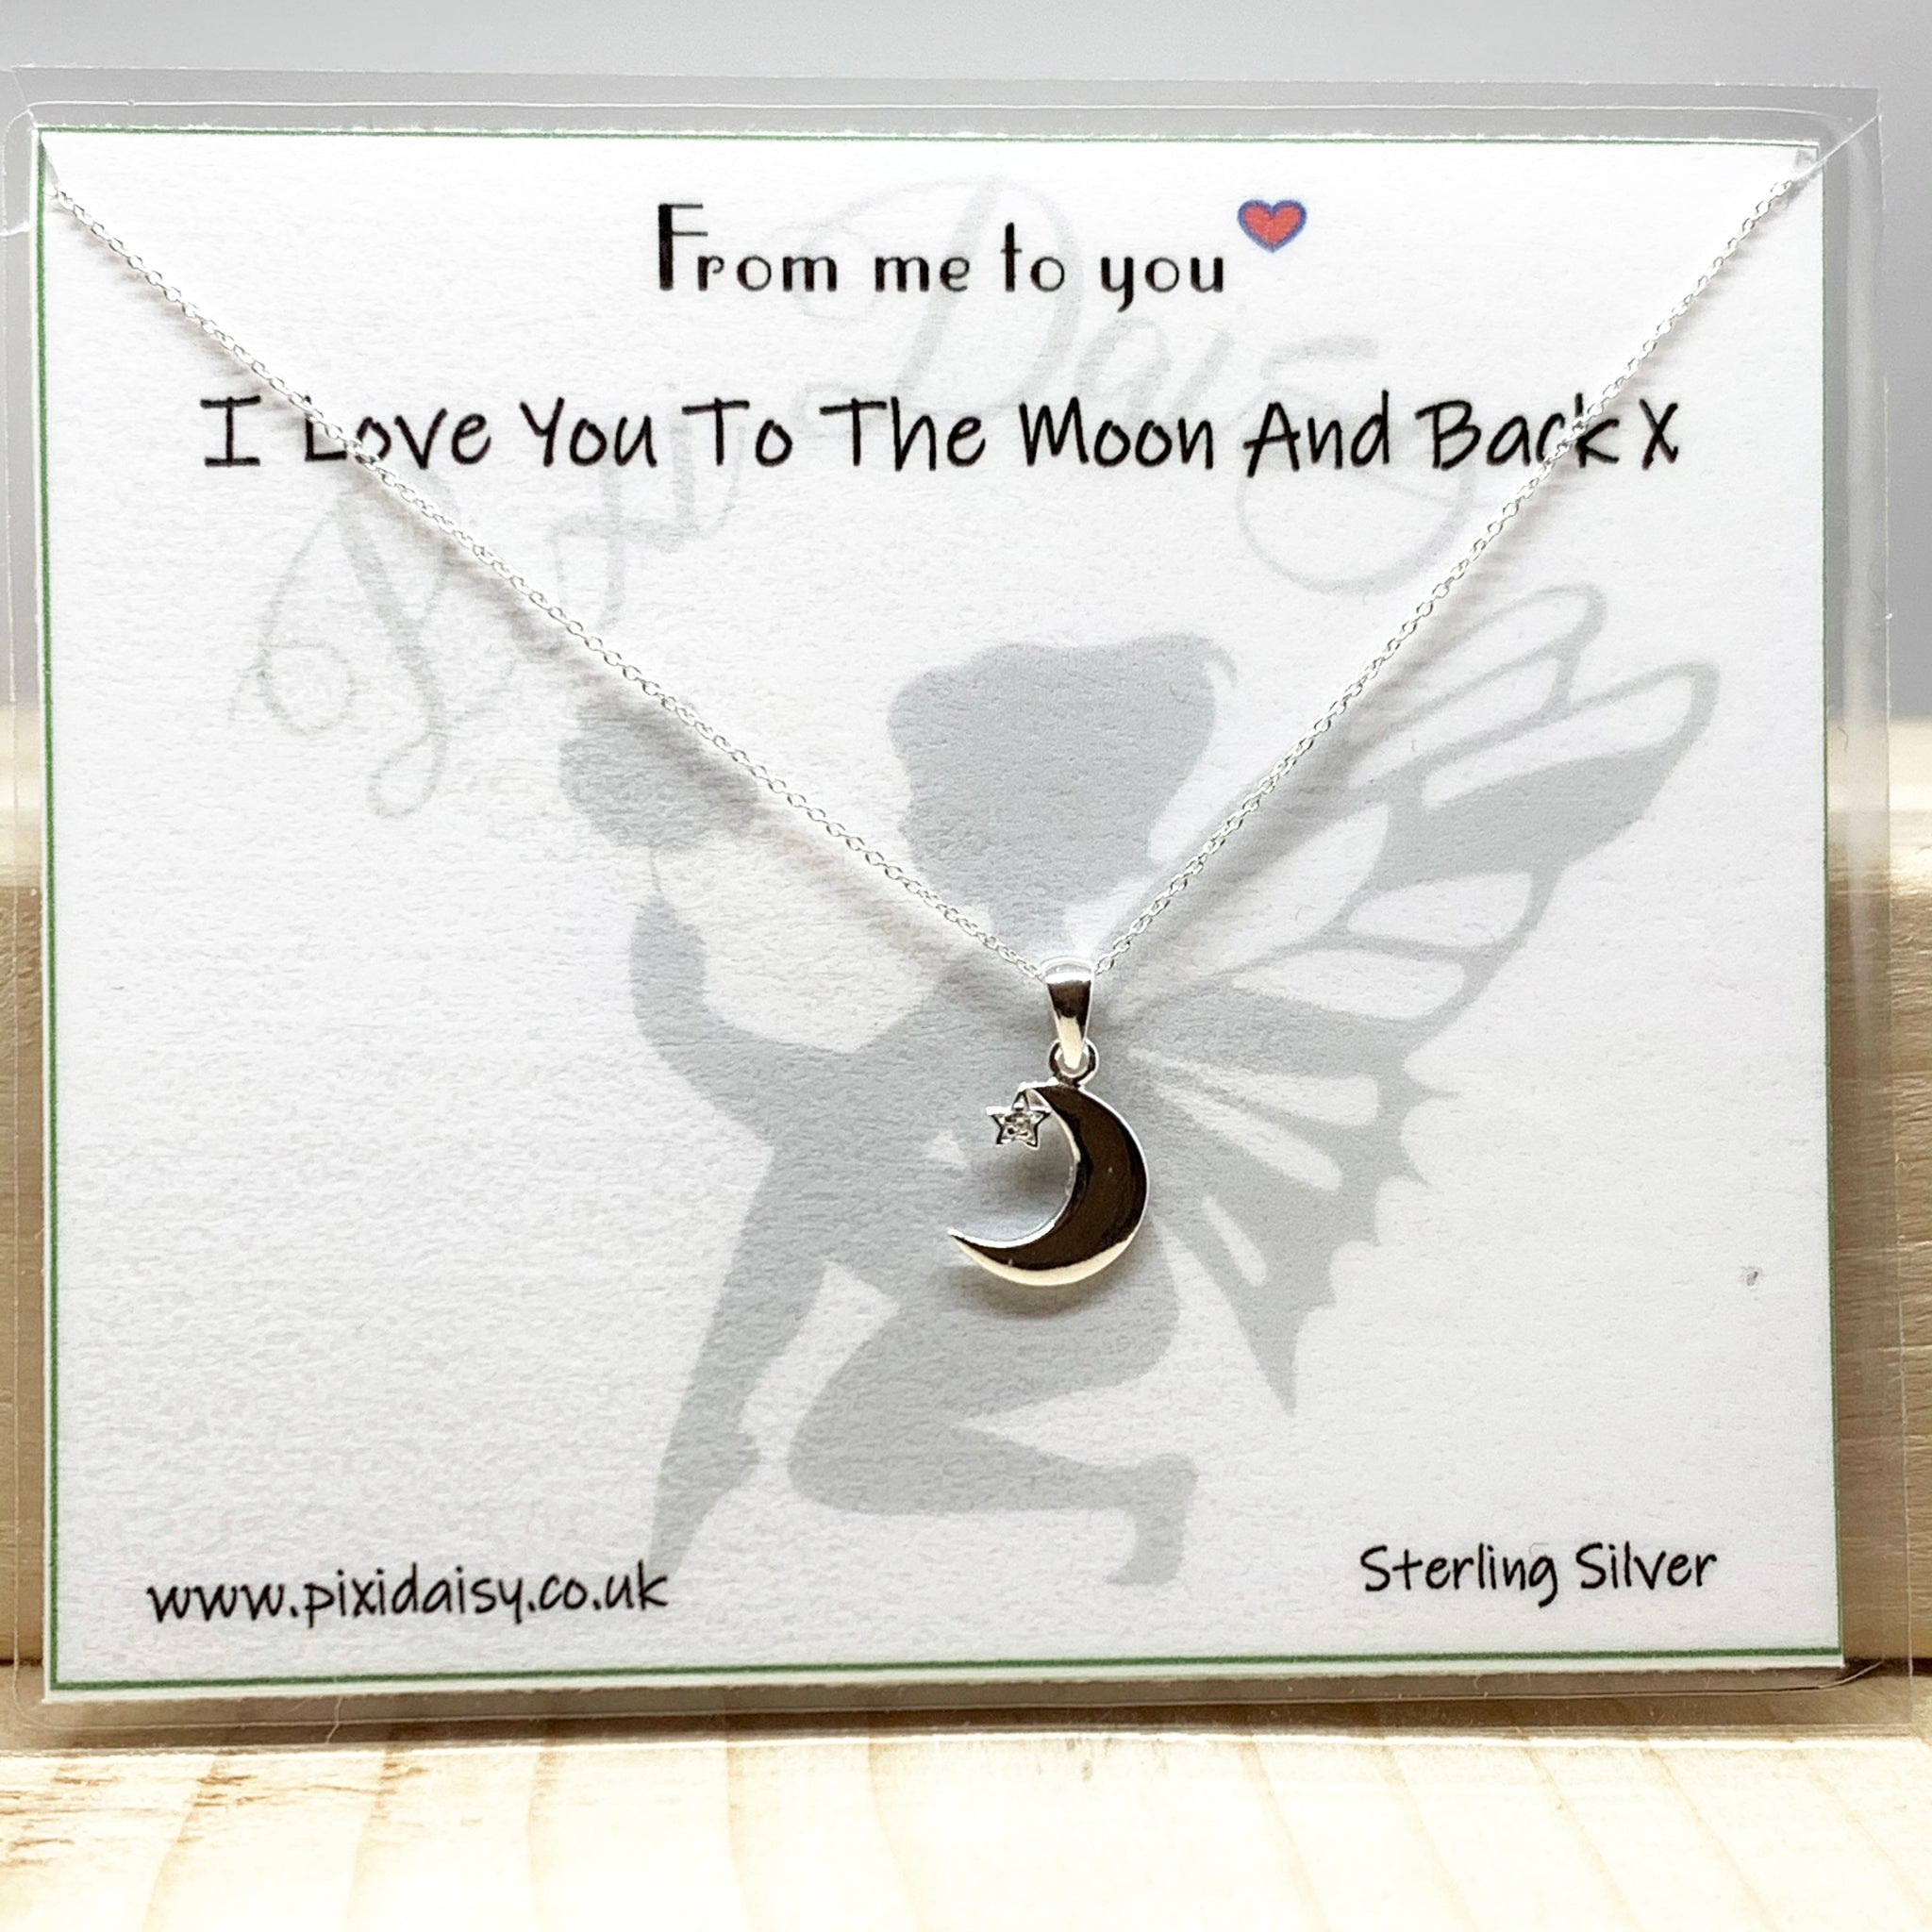 I Love You to the Moon & Back Sentiment from Pixi Daisy